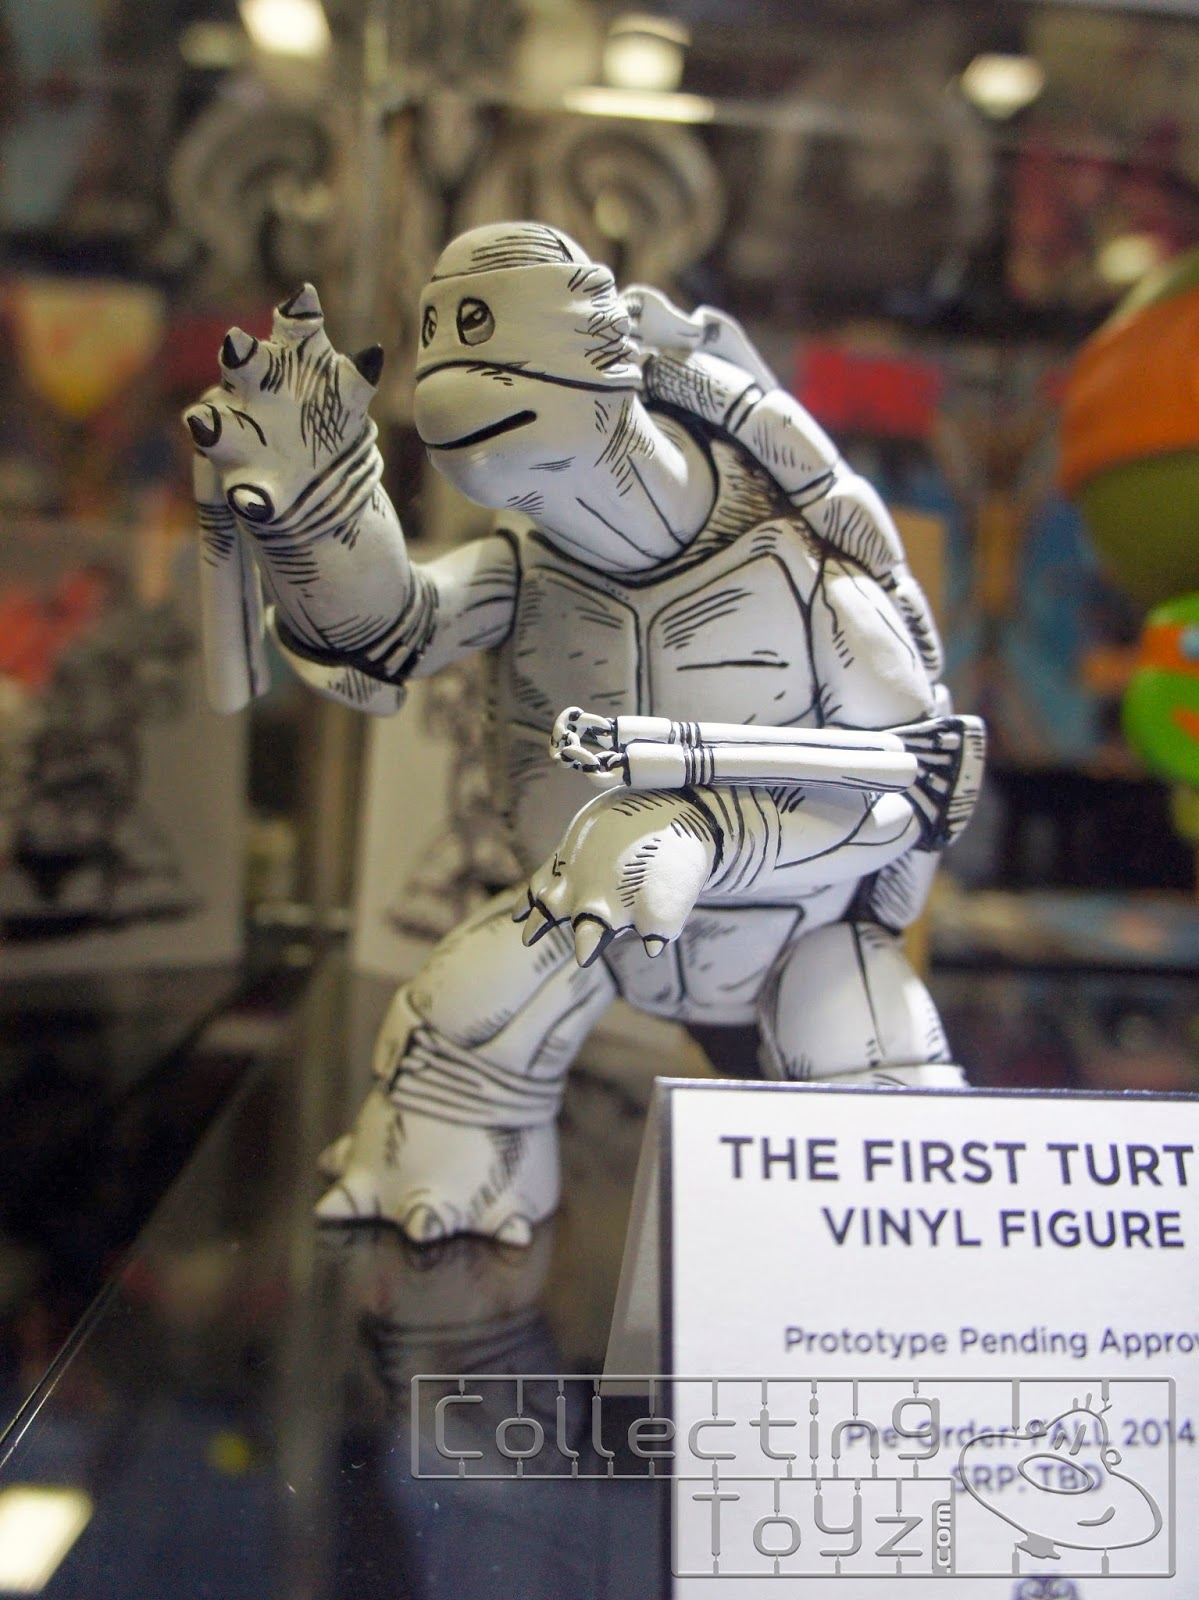 Collecting Toyz Mondo At Sdcc Bott Funko Pop Hellboy Sword Ie By The Time We Made It To Mondos Booth Turtle Pin Was Sold Out Really Wanted That Lol So Stoked See These Tmnt And Iron Giant Toys Being